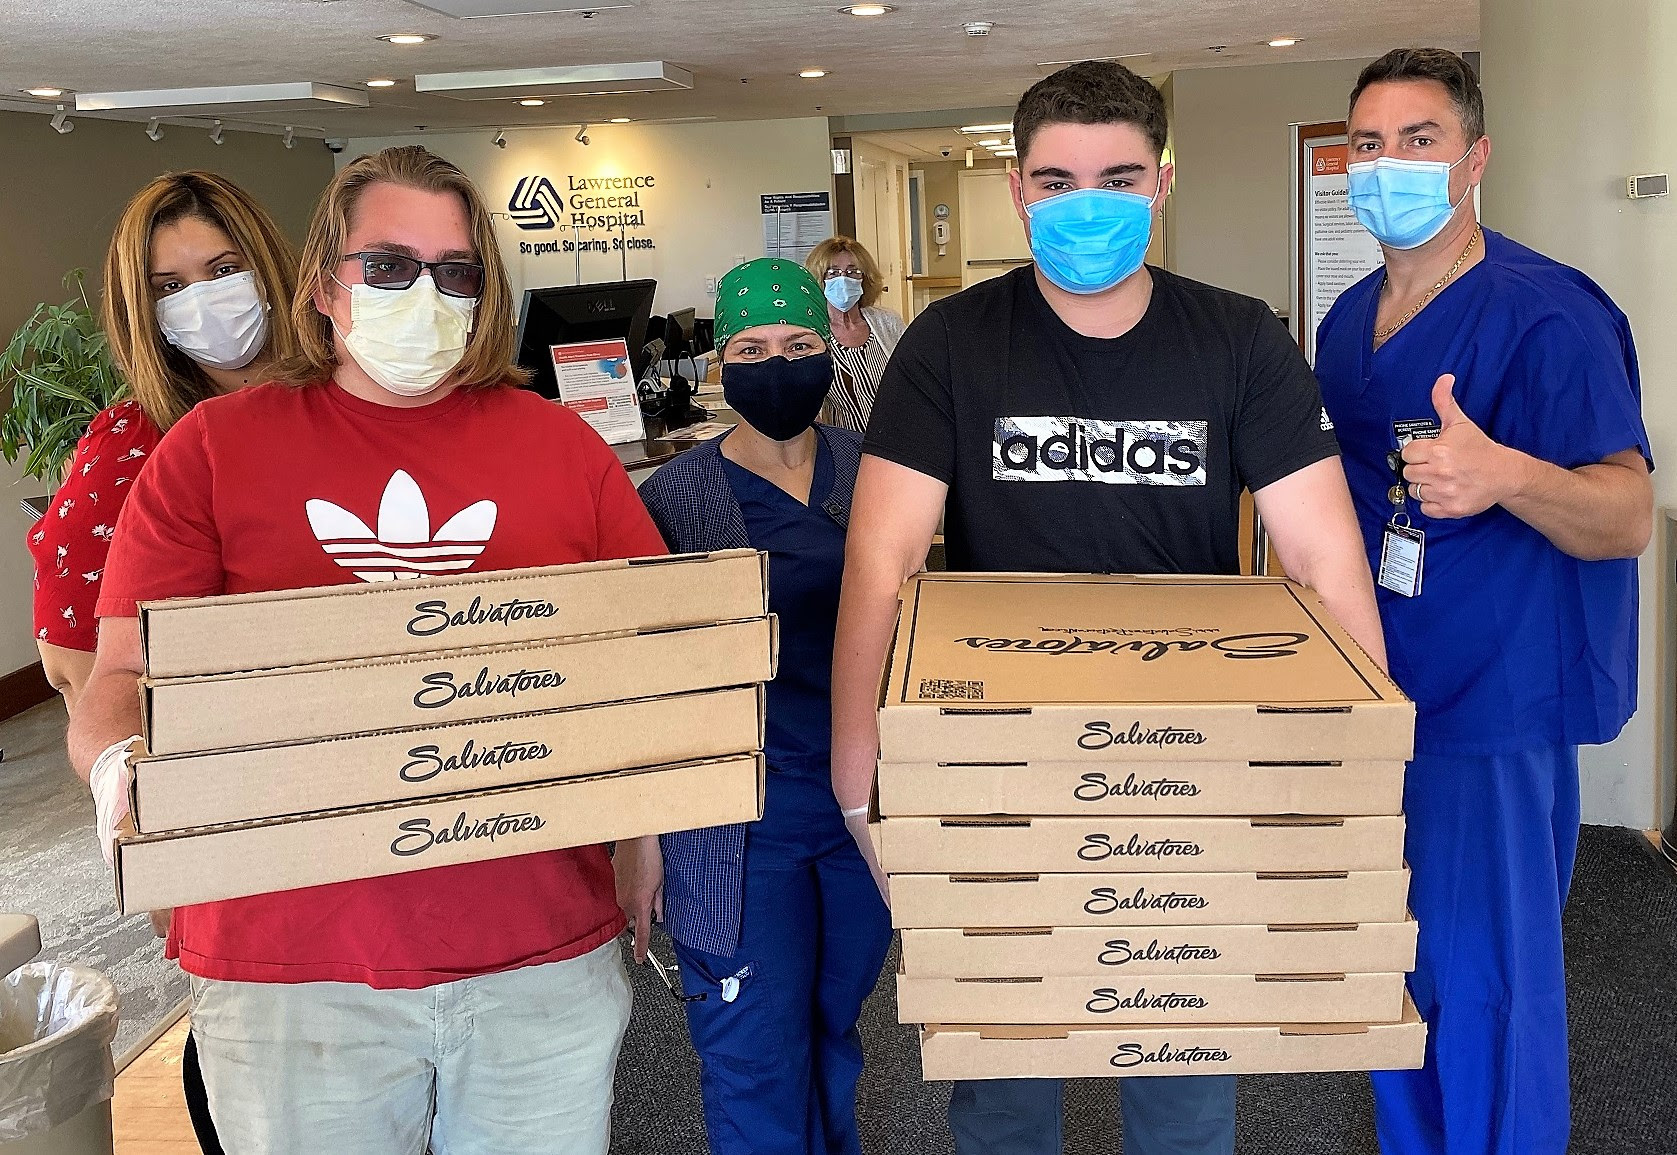 "Merrimack Valley Credit Union and members contributed $15,000 through its ""Feed the Frontline"" program to purchase 1,700 meals from seven local restaurants for the hardworking healthcare professionals at Lawrence General Hospital. Pictured above, employees from Salvatore's in Lawrence deliver 130 pizzas to staff at Lawrence General Hospital."